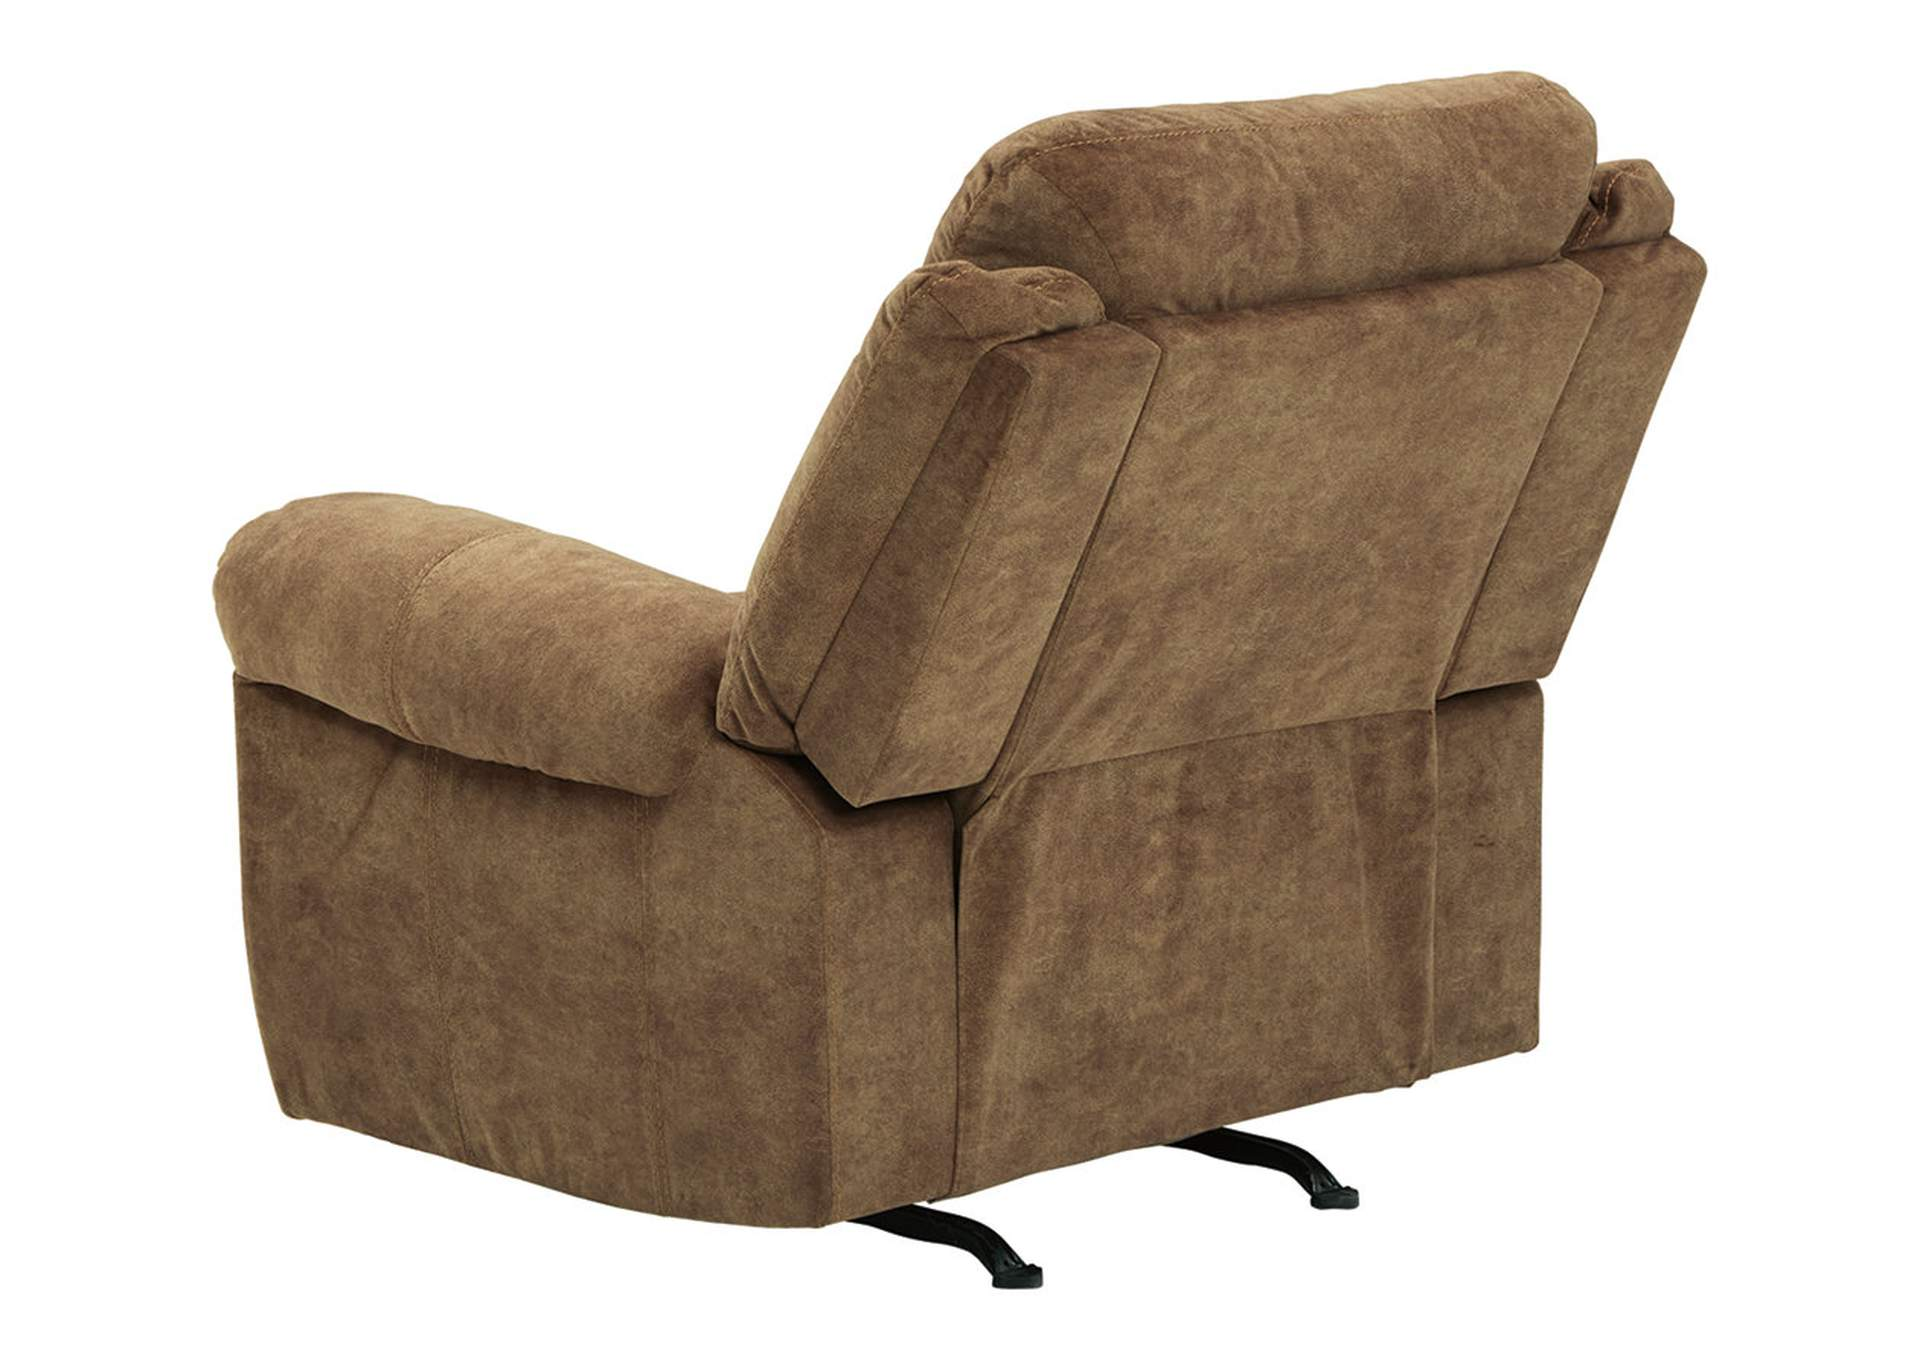 Huddle-Up Recliner,Signature Design By Ashley